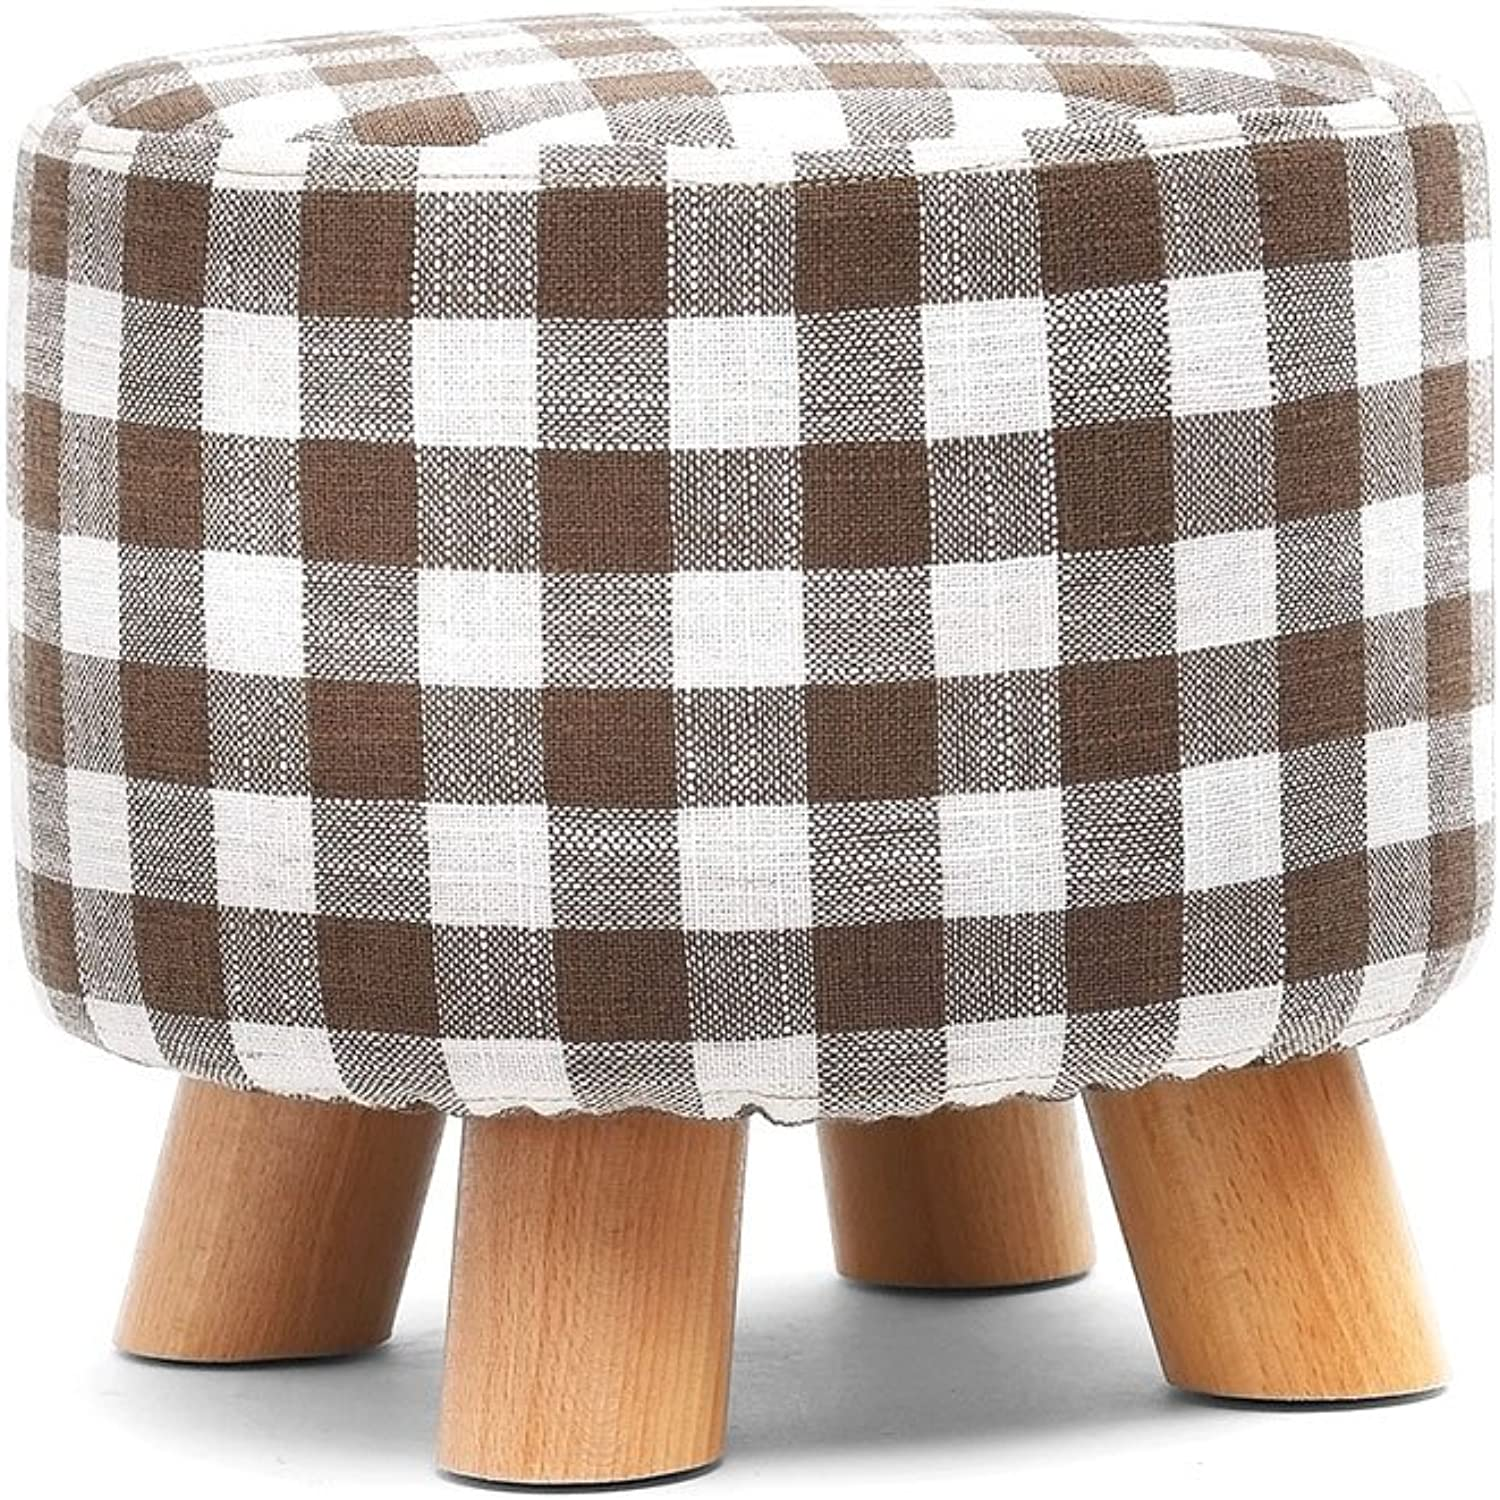 Household shoes Bench Living Room Coffee Table Stool Fabric Sofa Stool Solid Wood Low Stool Round Adult Bench Fashion Creativity Pure color Lattice Footstool (color   D)